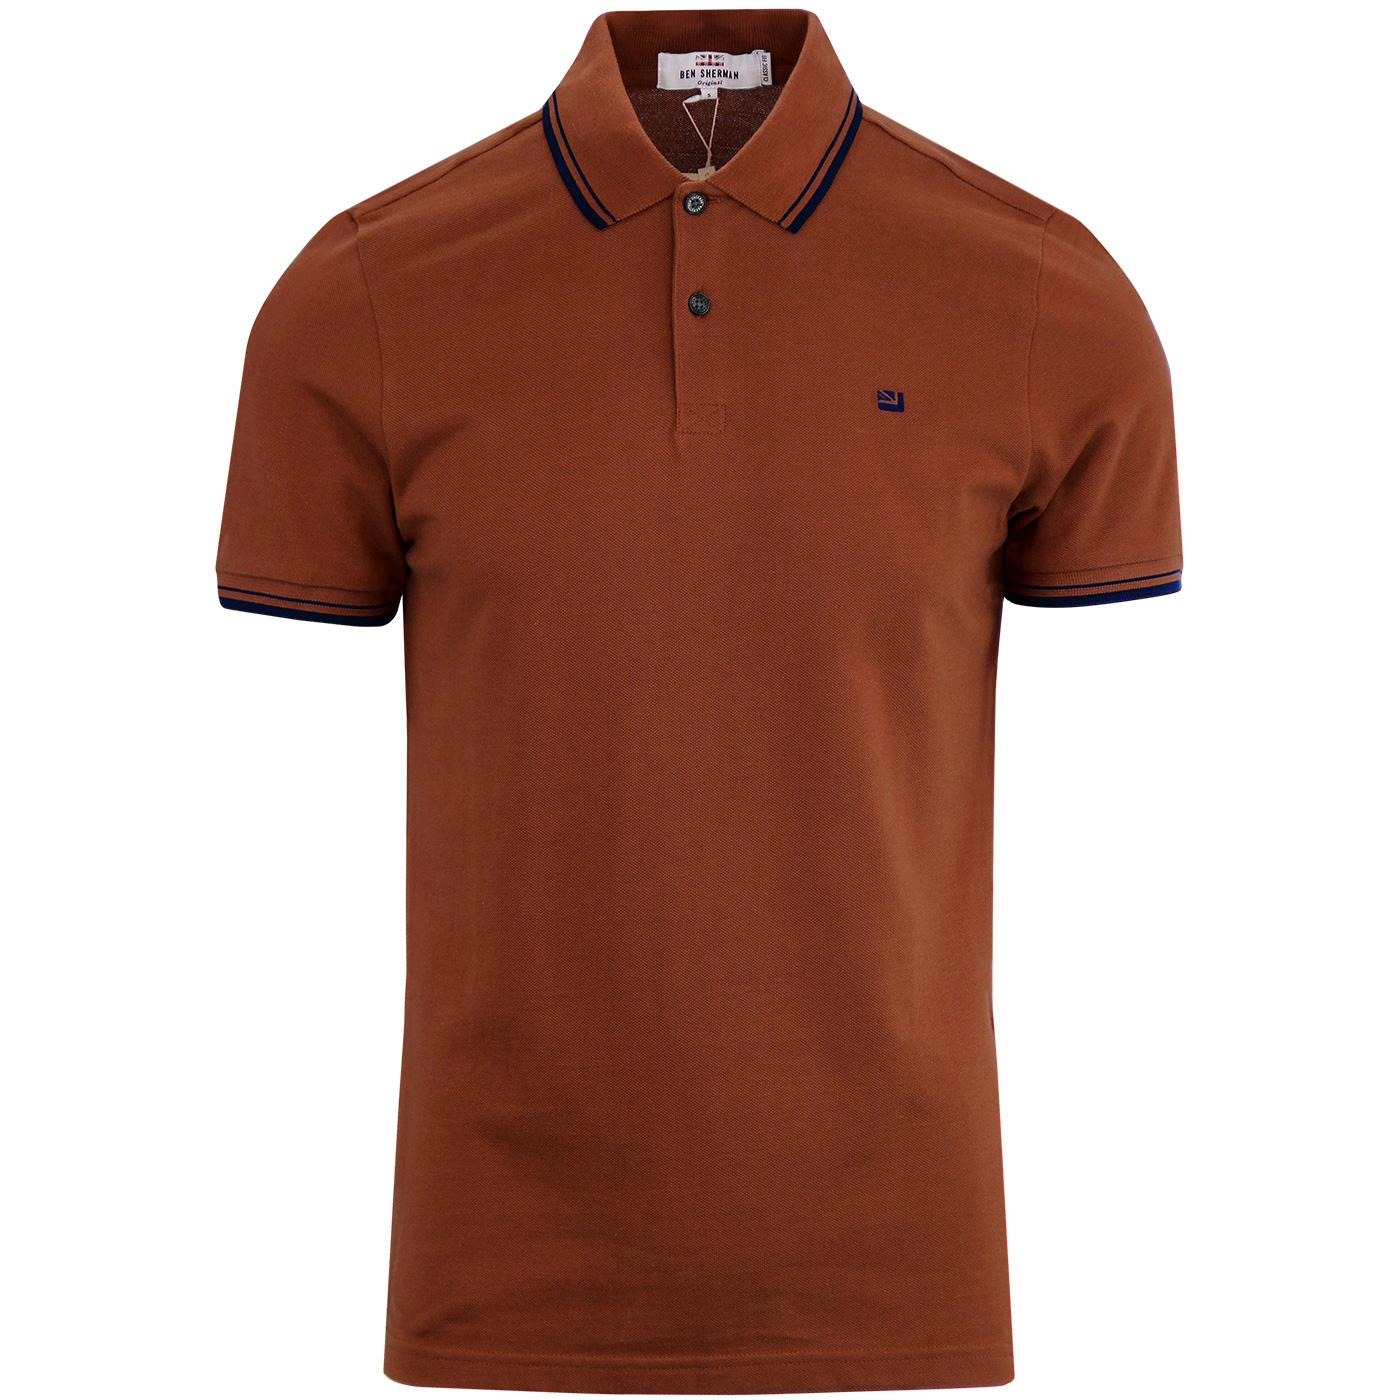 BEN SHERMAN Romford Mod Tipped Polo Shirt RUST